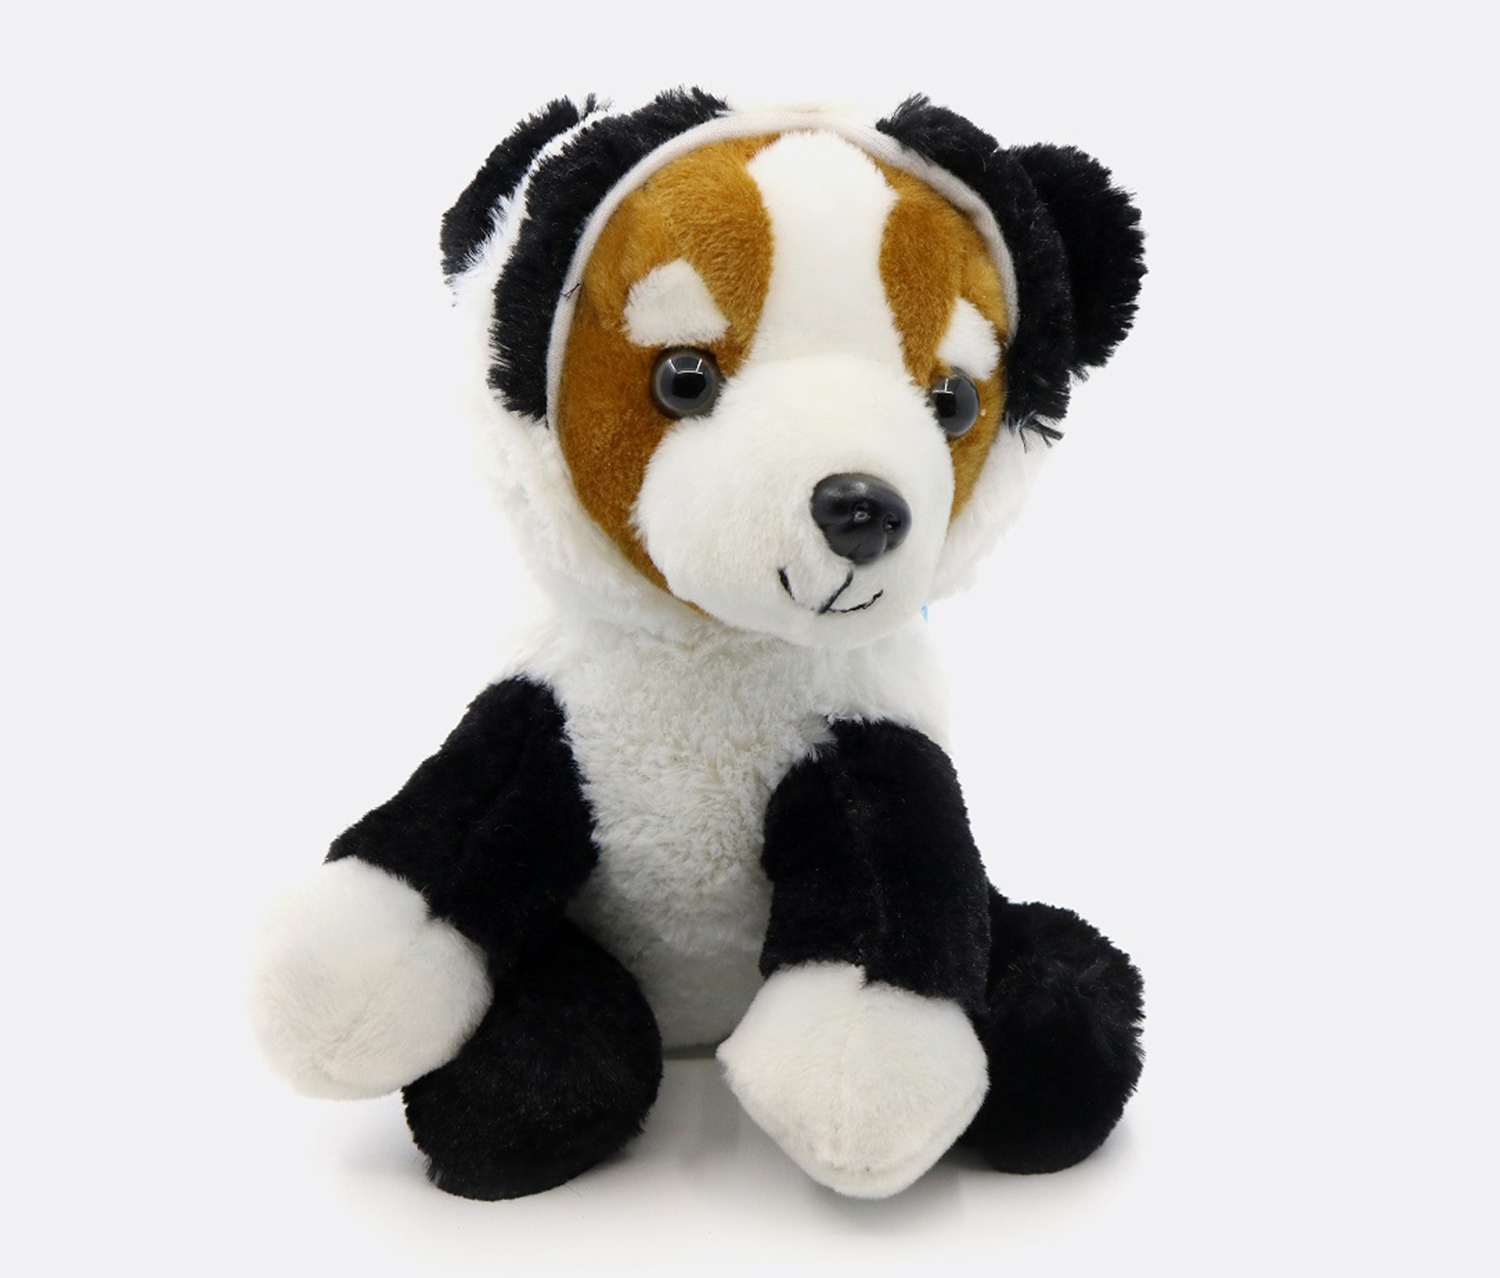 Plush Toy-Cute Dog, Black/White/Tan